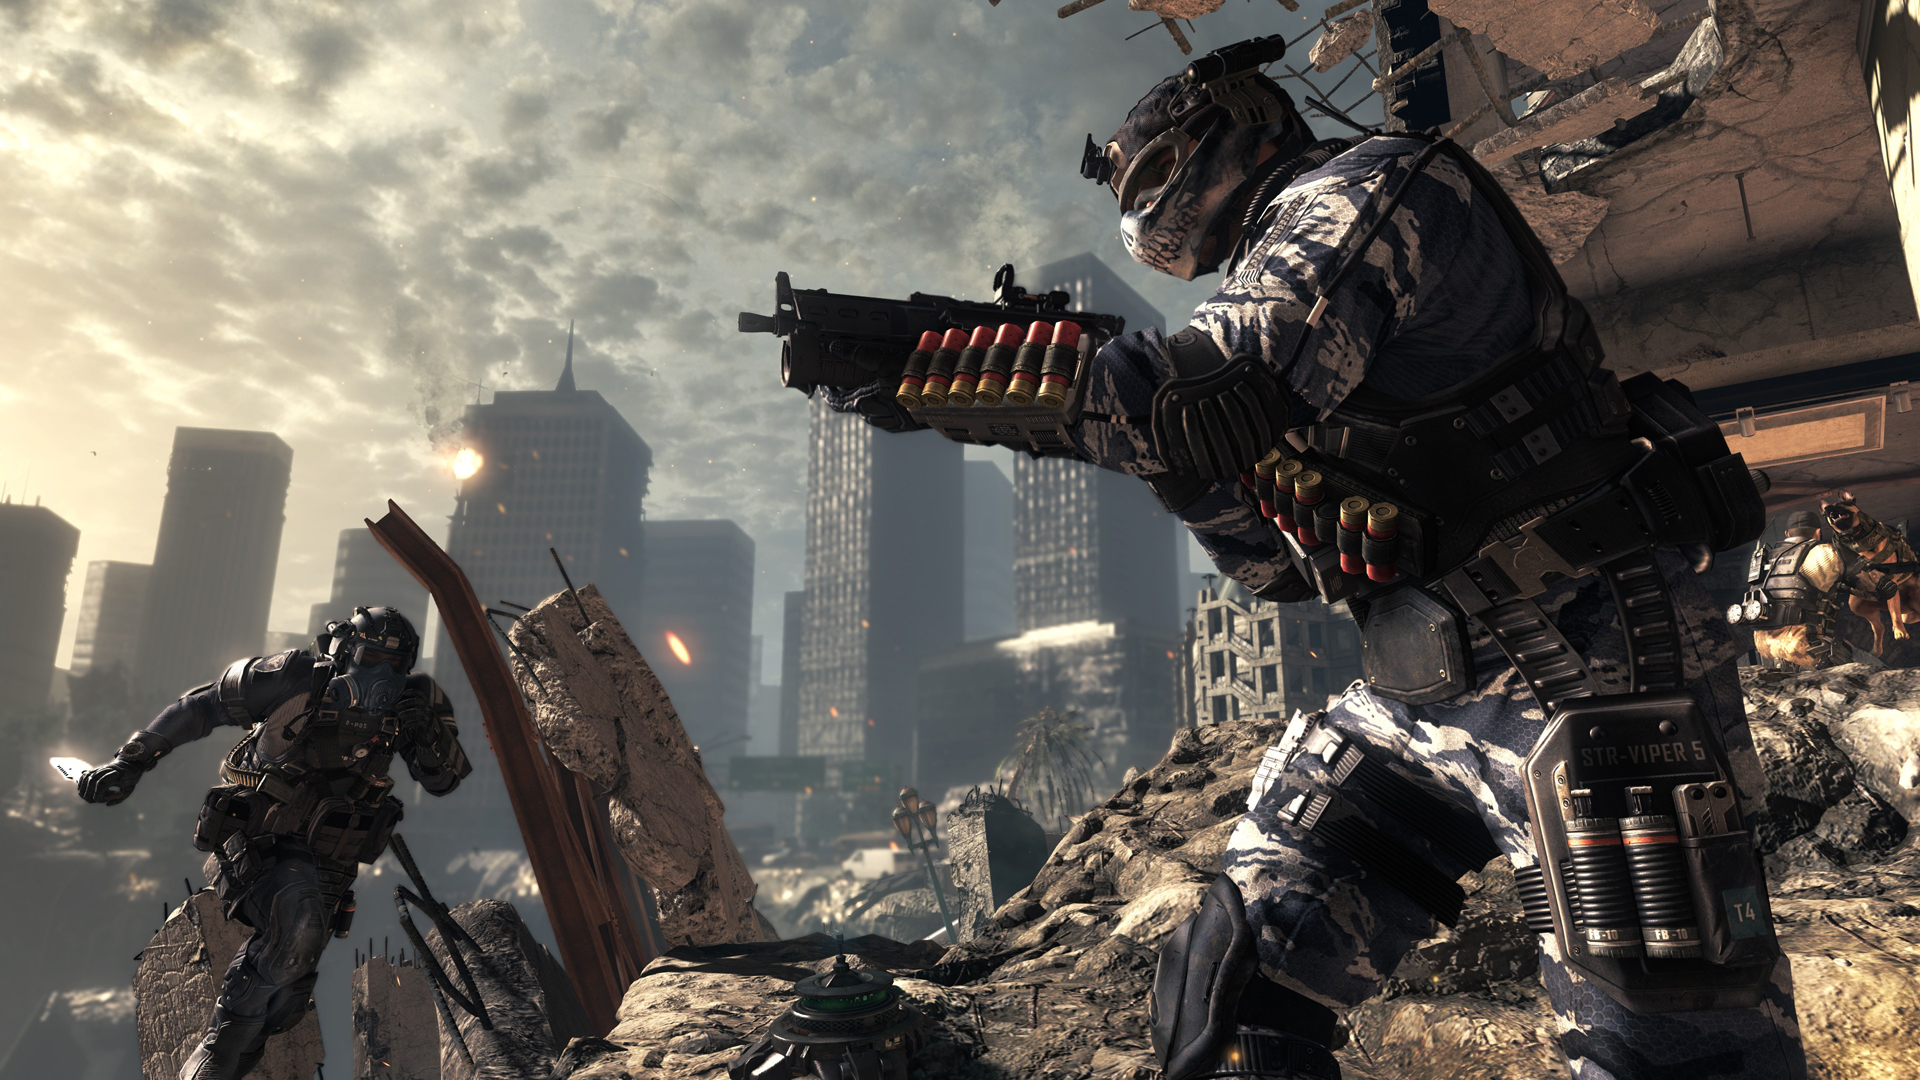 Download call of duty ghosts game for pc full version.